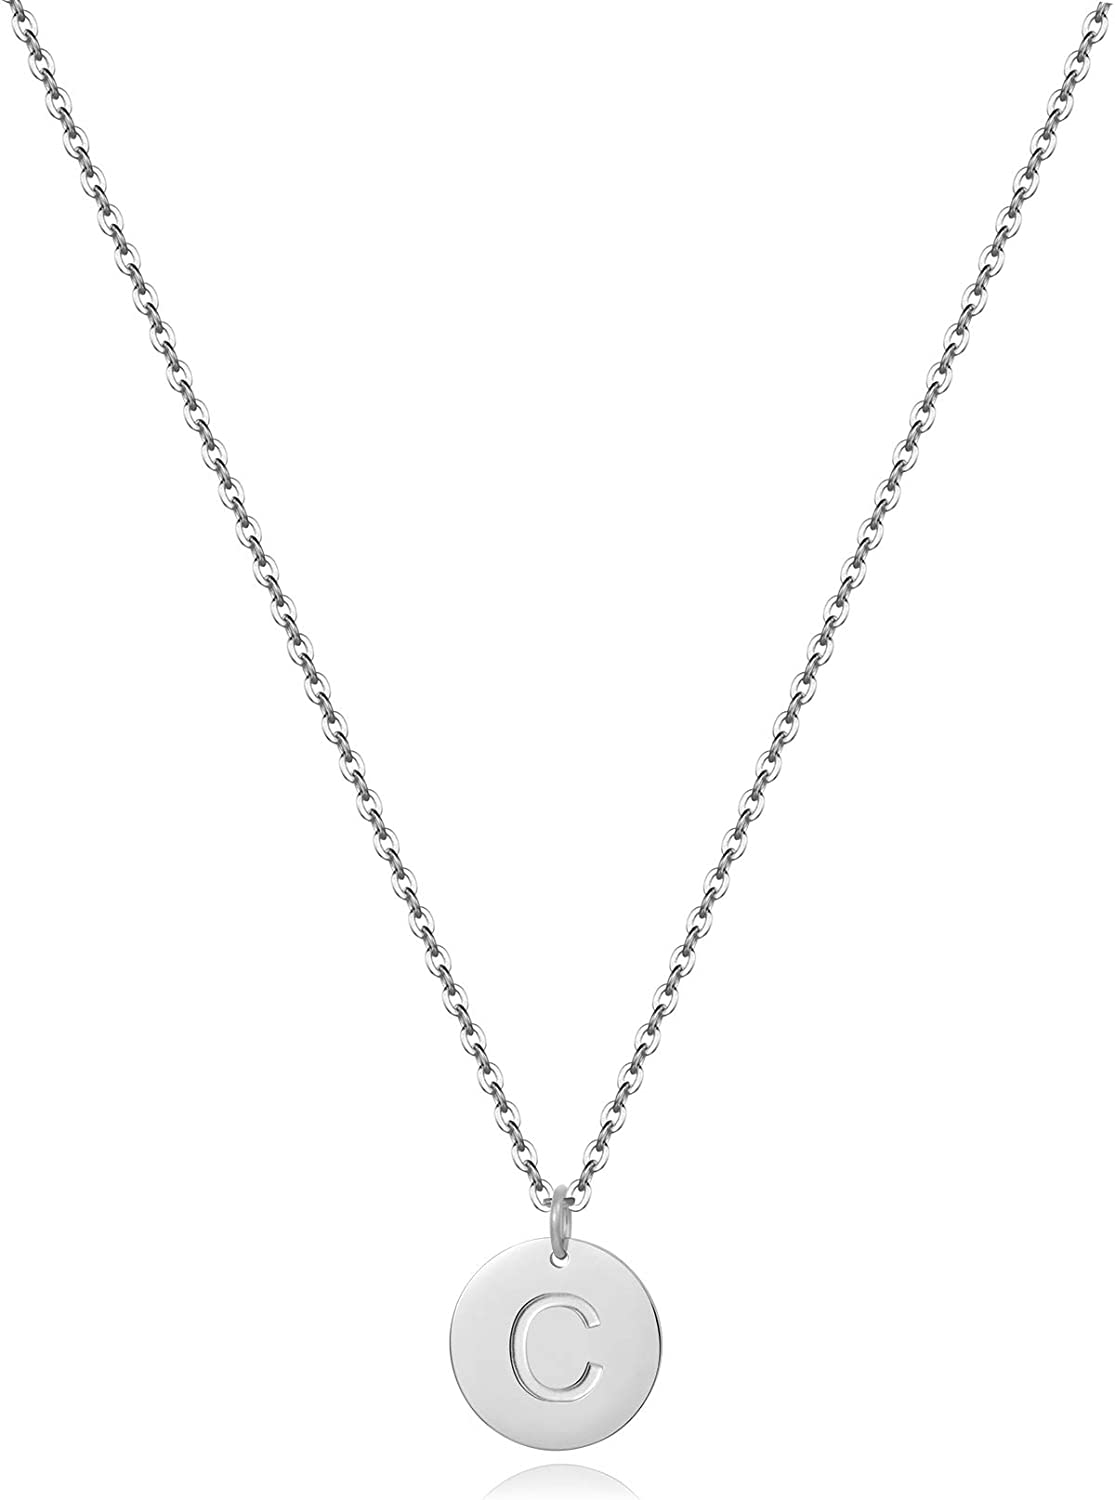 All stores are sold Disc Initial Necklaces for Women Plated Doub 25% OFF 18K Round Gold